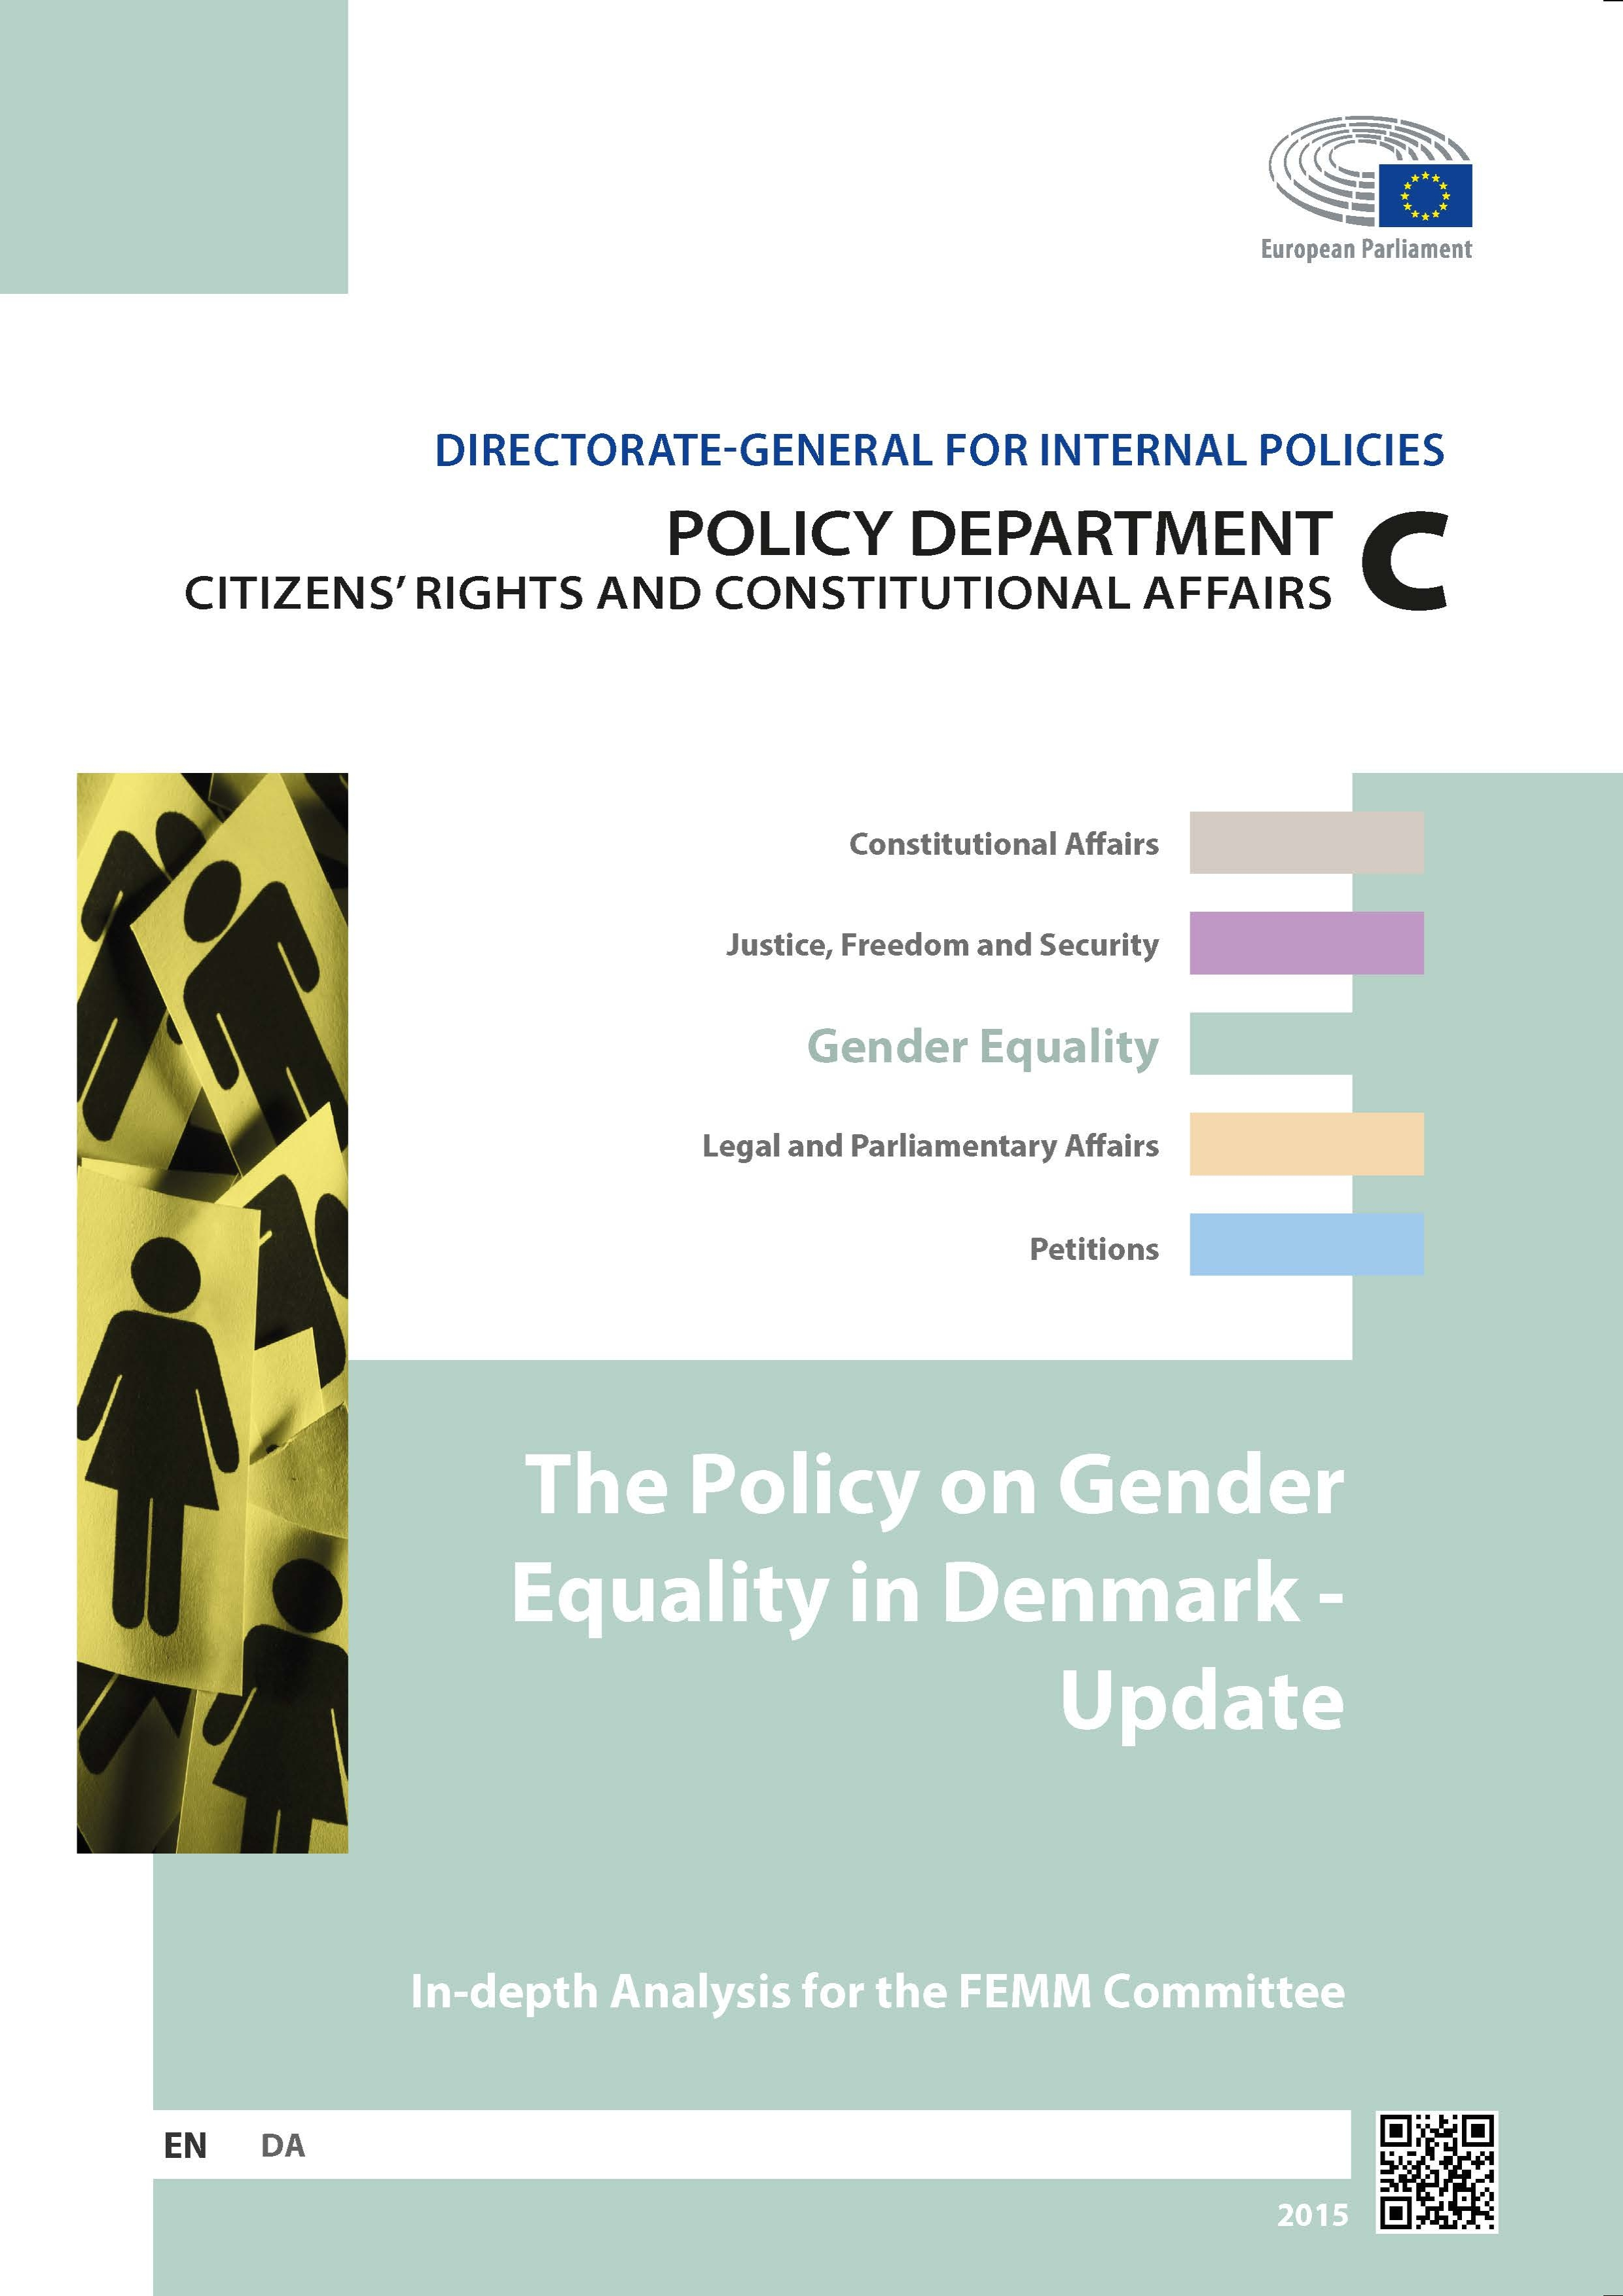 policy gender equality Denmark update